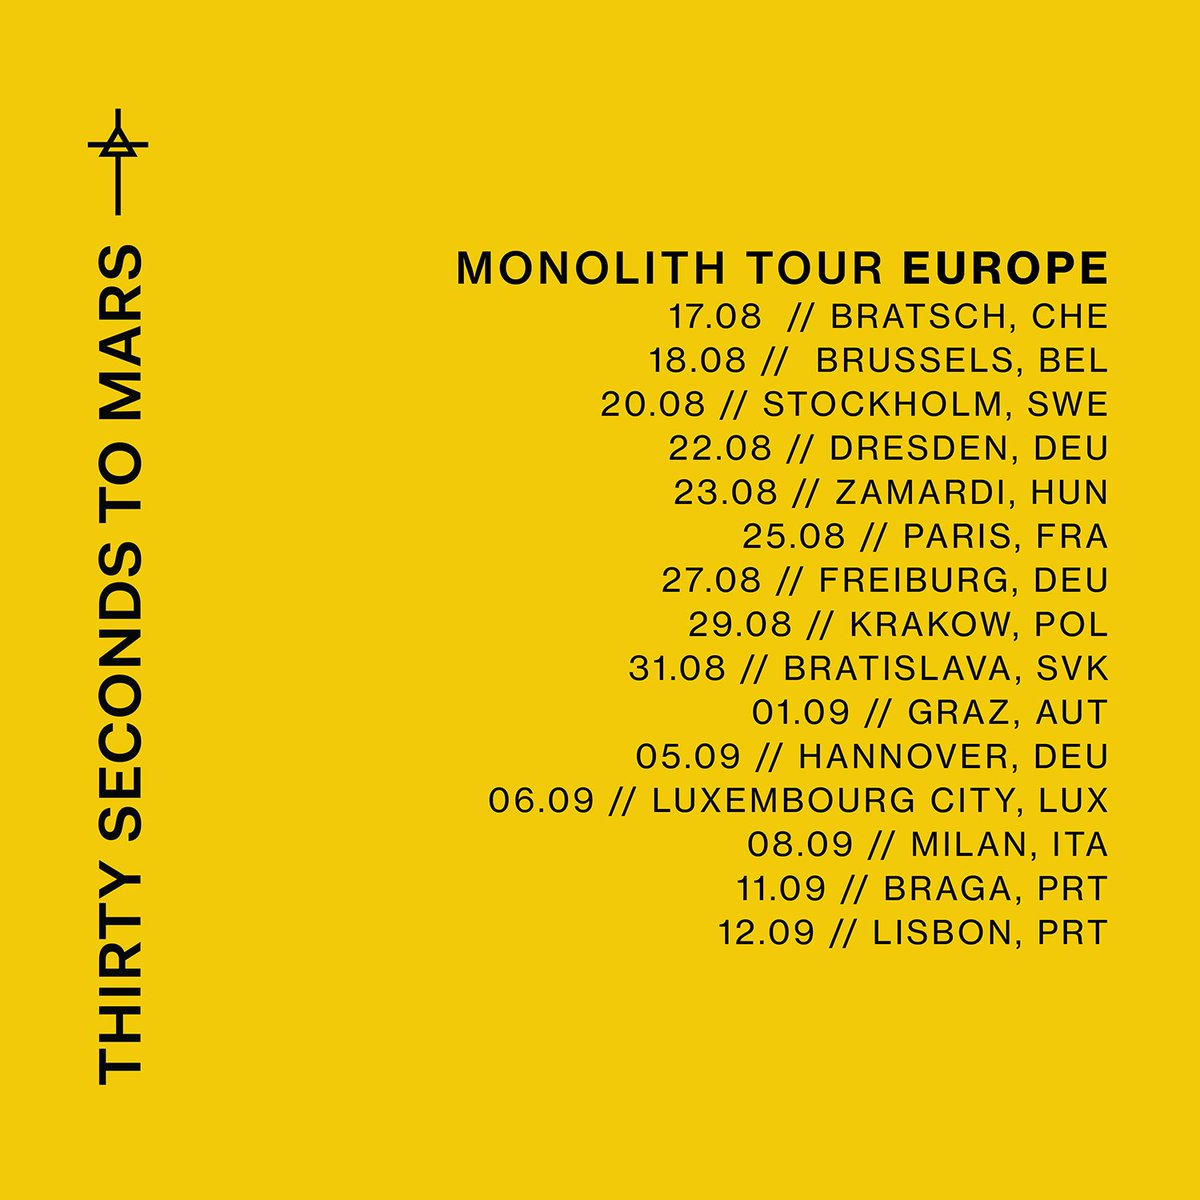 RT @30SECONDSTOMARS: MONOLITH TOUR // EUROPE + LATIN AMERICA https://t.co/O4vmmChlAv https://t.co/orMc0VlKHs